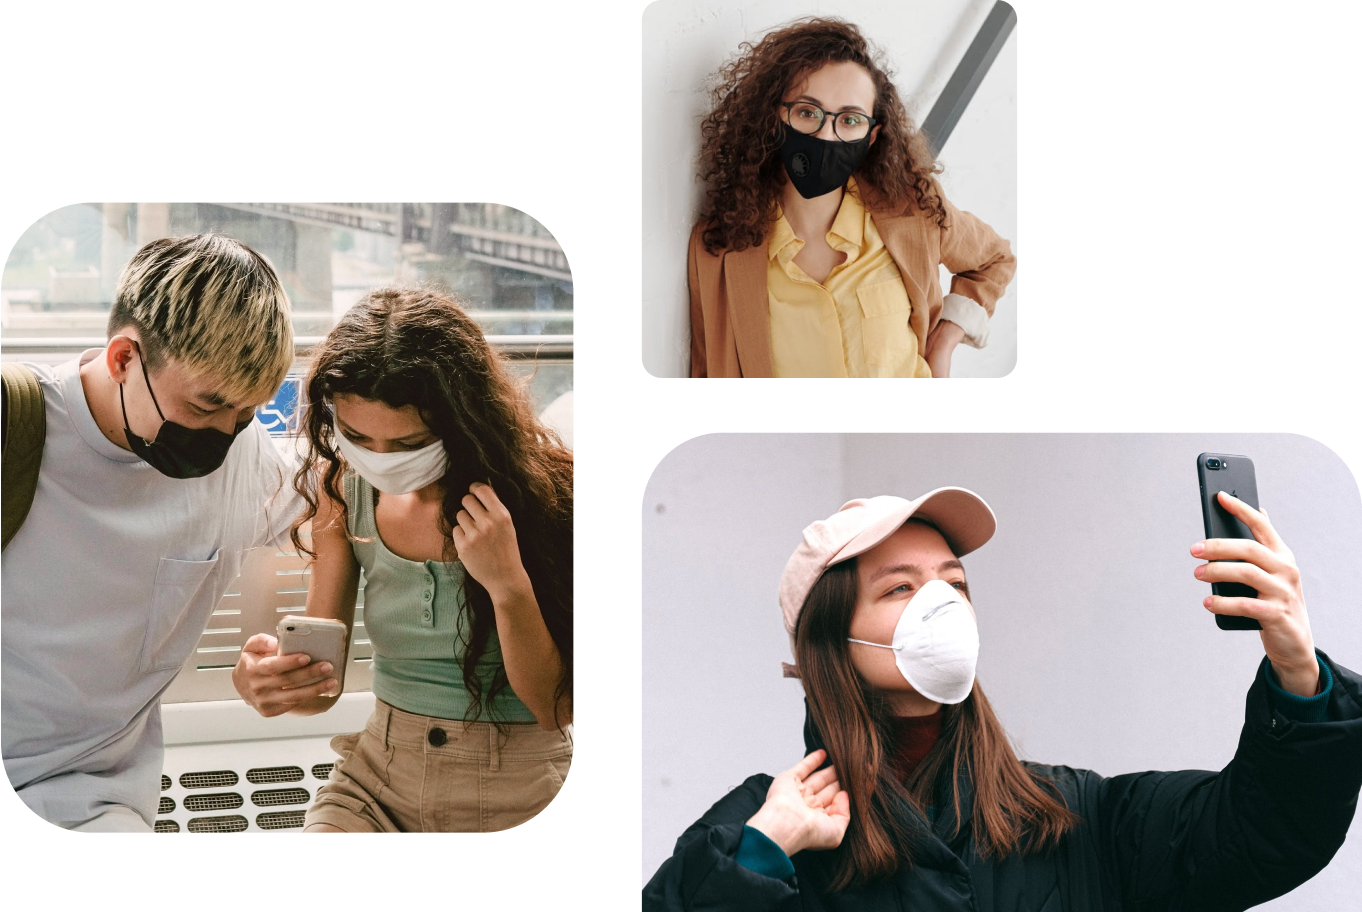 Two people wearing face masks looking at a phone, person wearing a face mask taking a selfie, and a person wearing a face mask